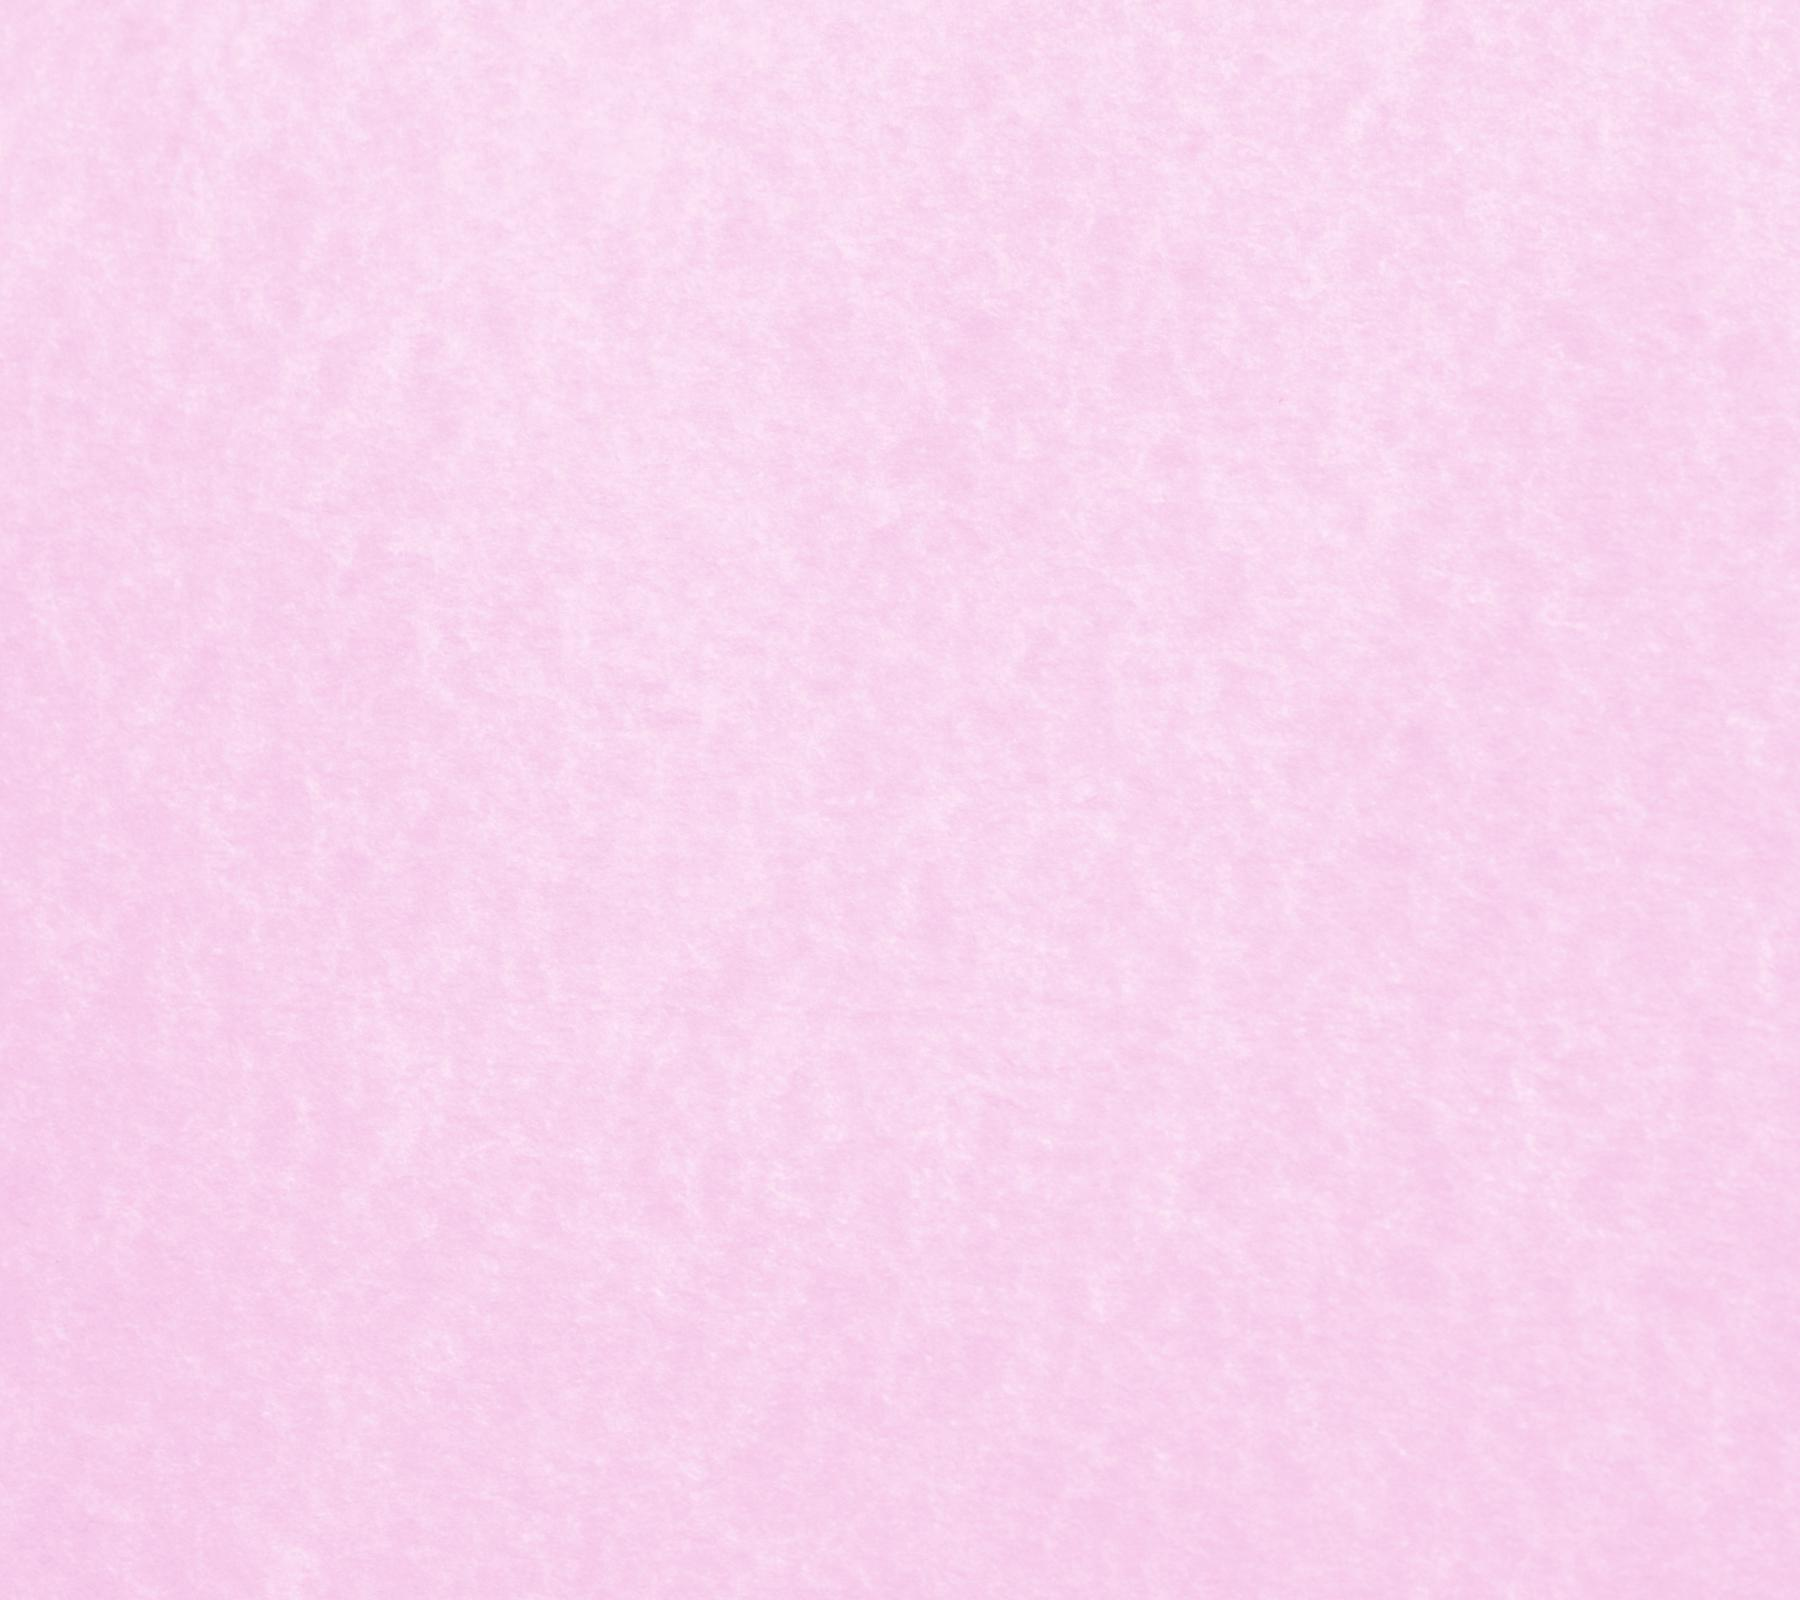 background wallpaper image light pink parchment paper background 1800x1600